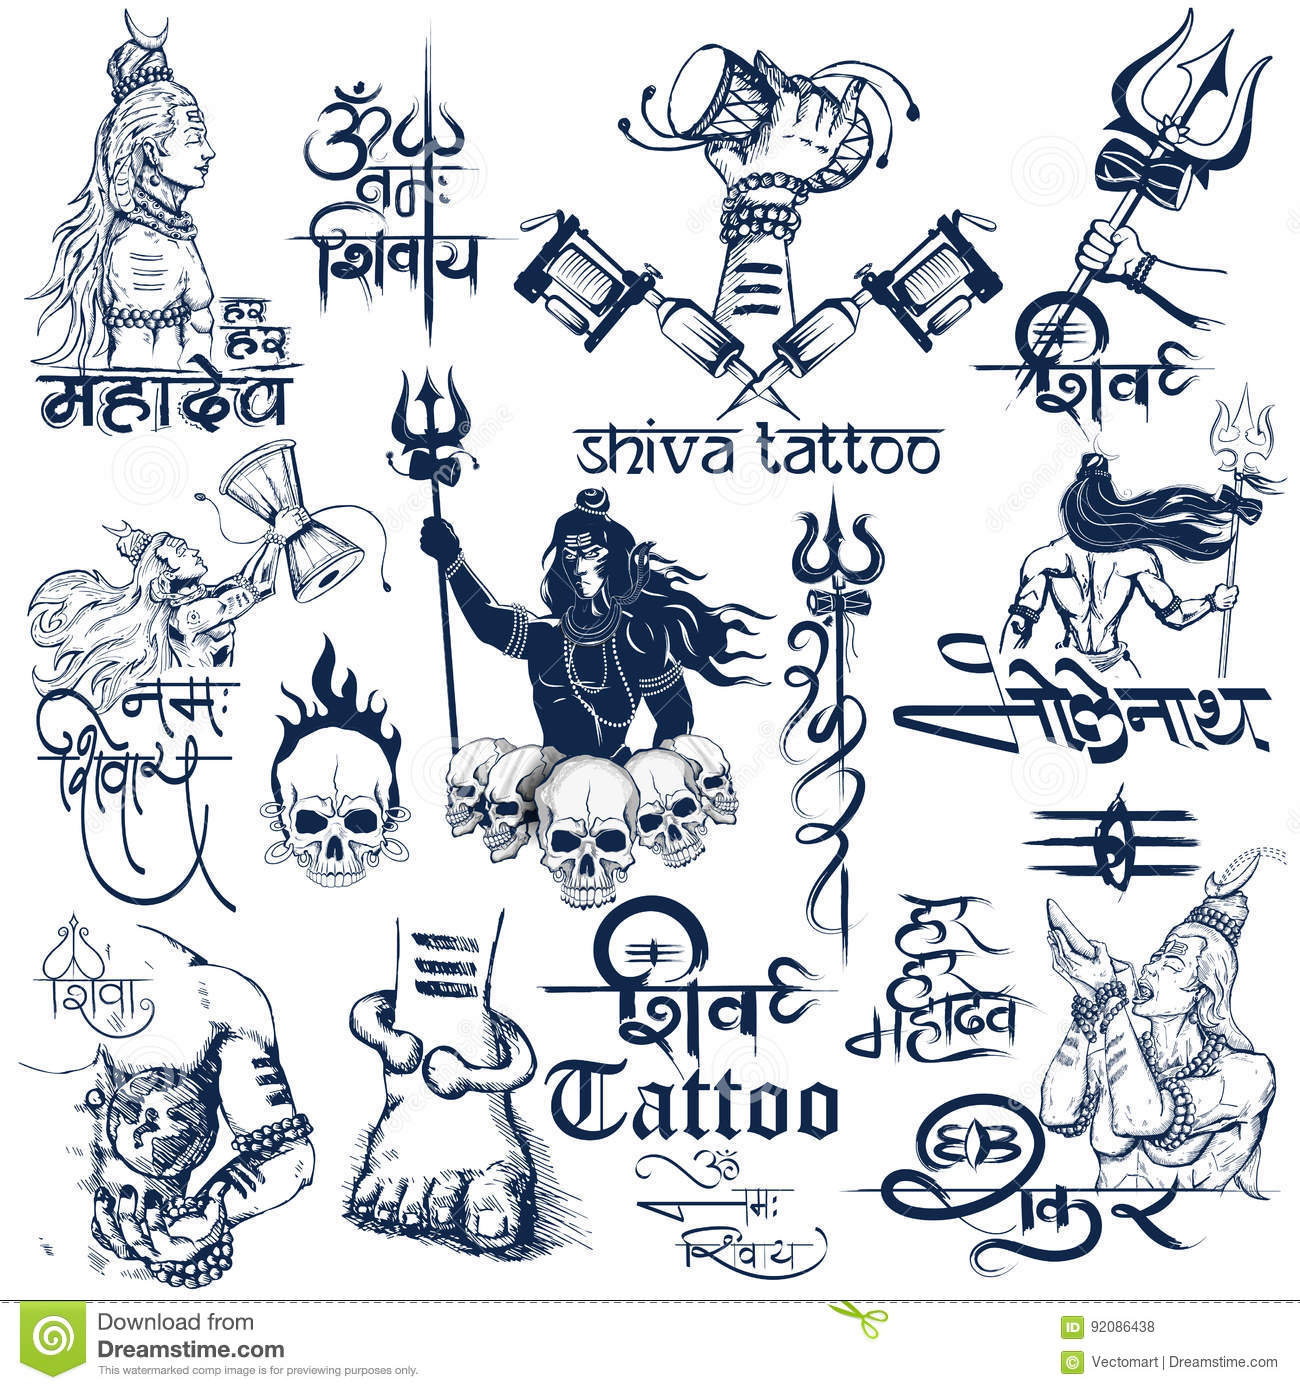 Illustration of tattoo art design of lord shiva collection with text in hindi namah shivaya i bow to shiva for mahashivratri